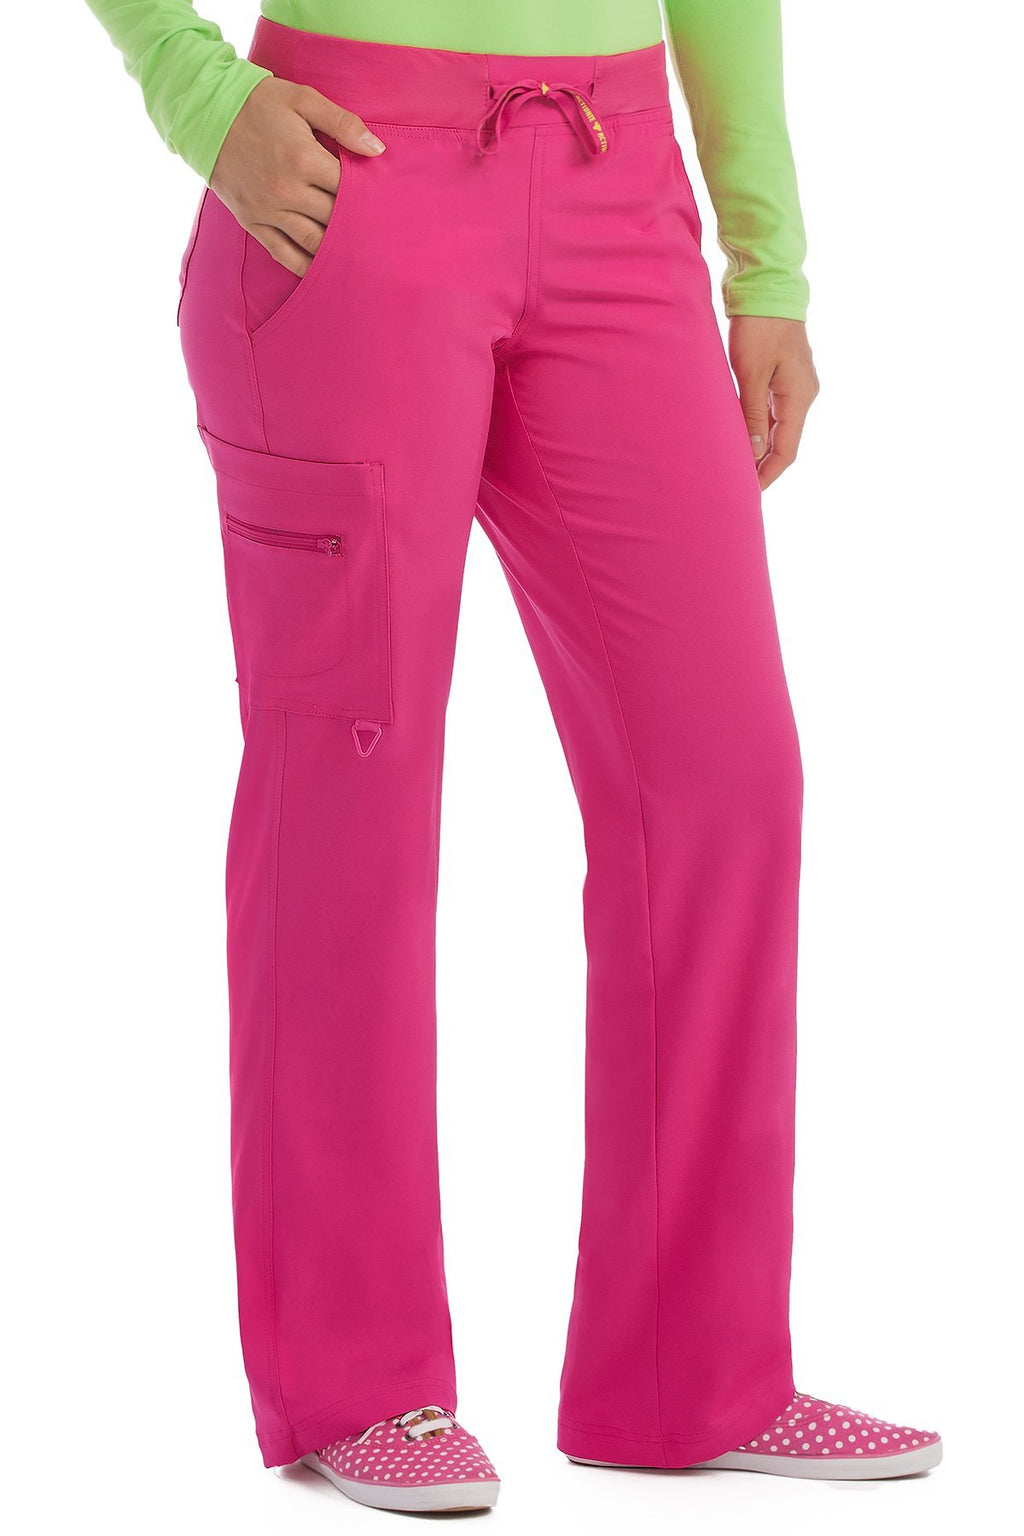 Med Couture Activate 8747 Tall Yoga 1 Cargo Pocket Pant